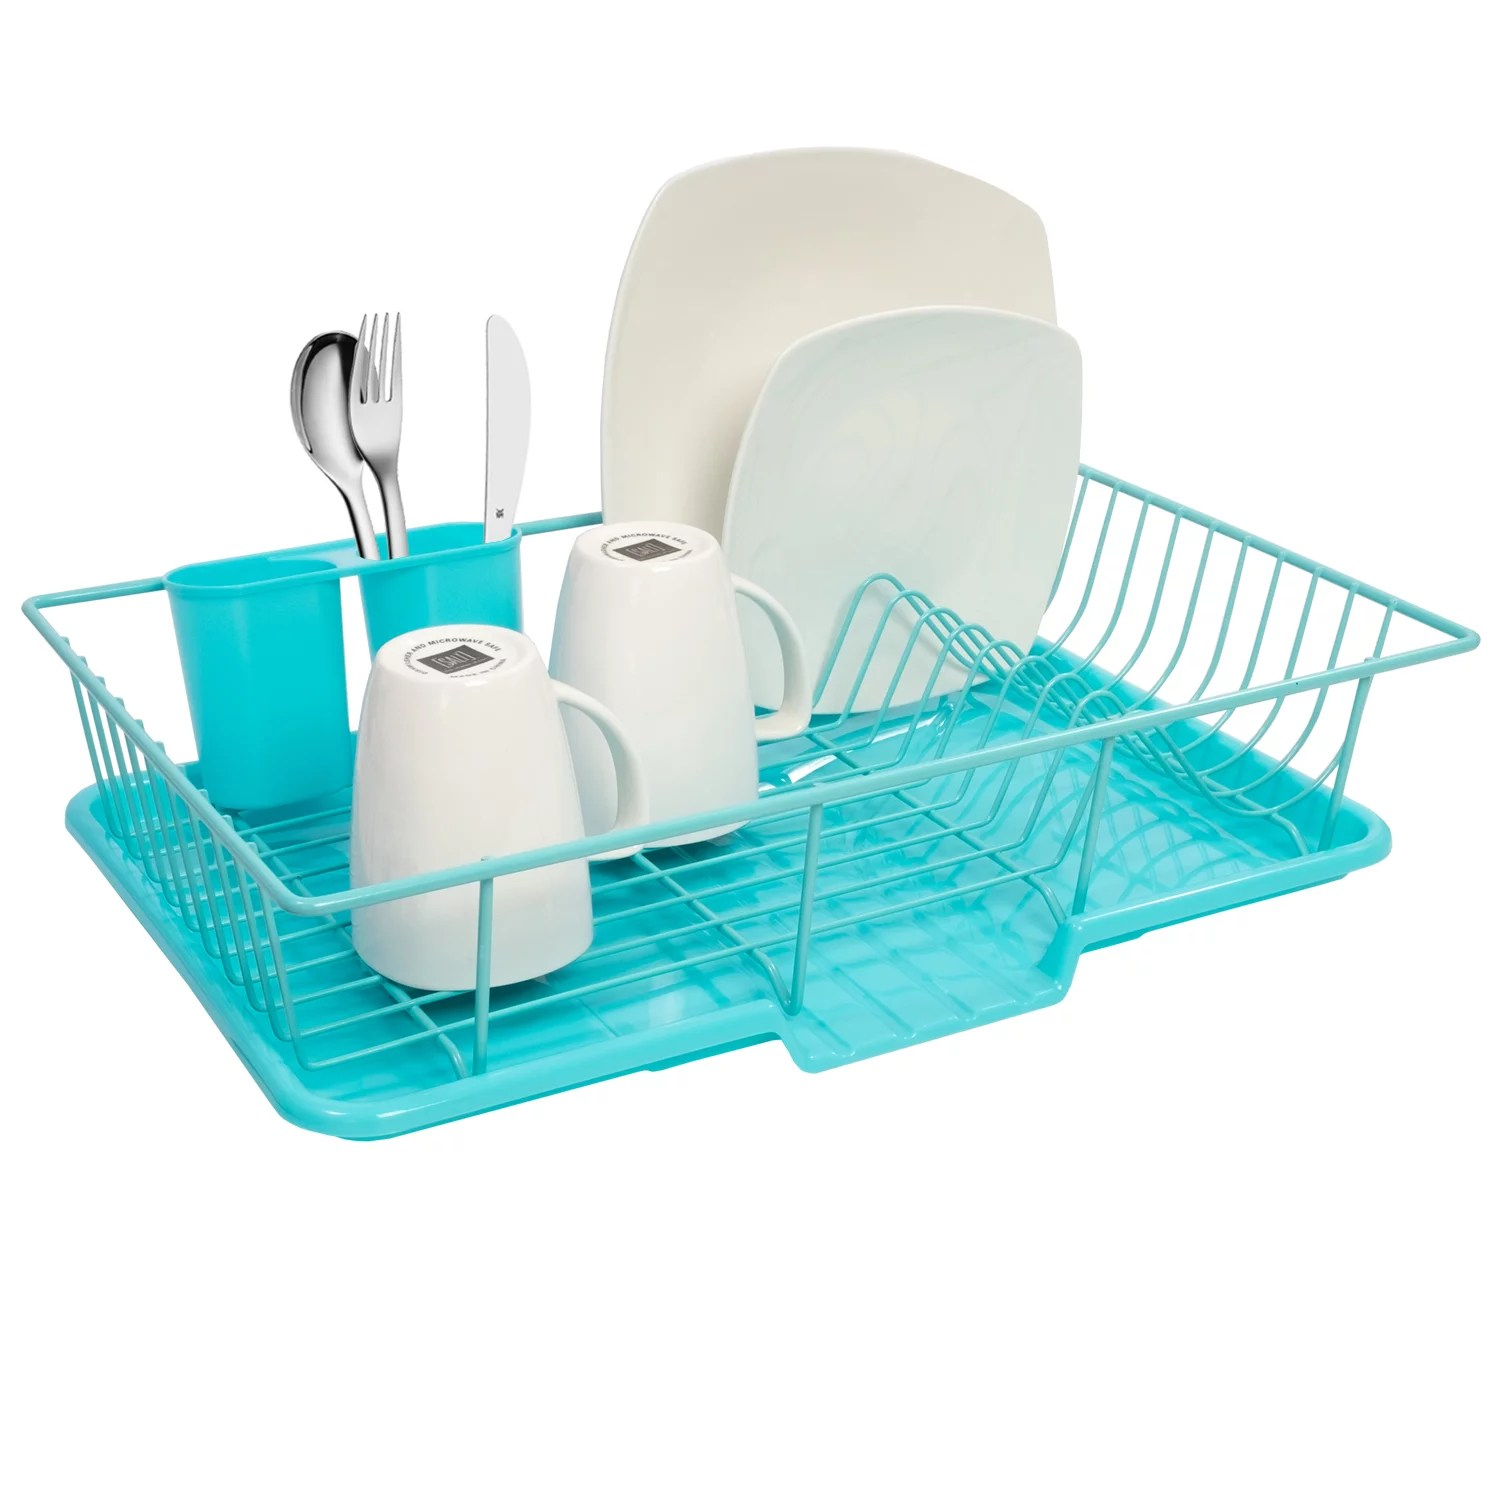 sweet home collection 3 piece kitchen sink dish drainer set turquoise